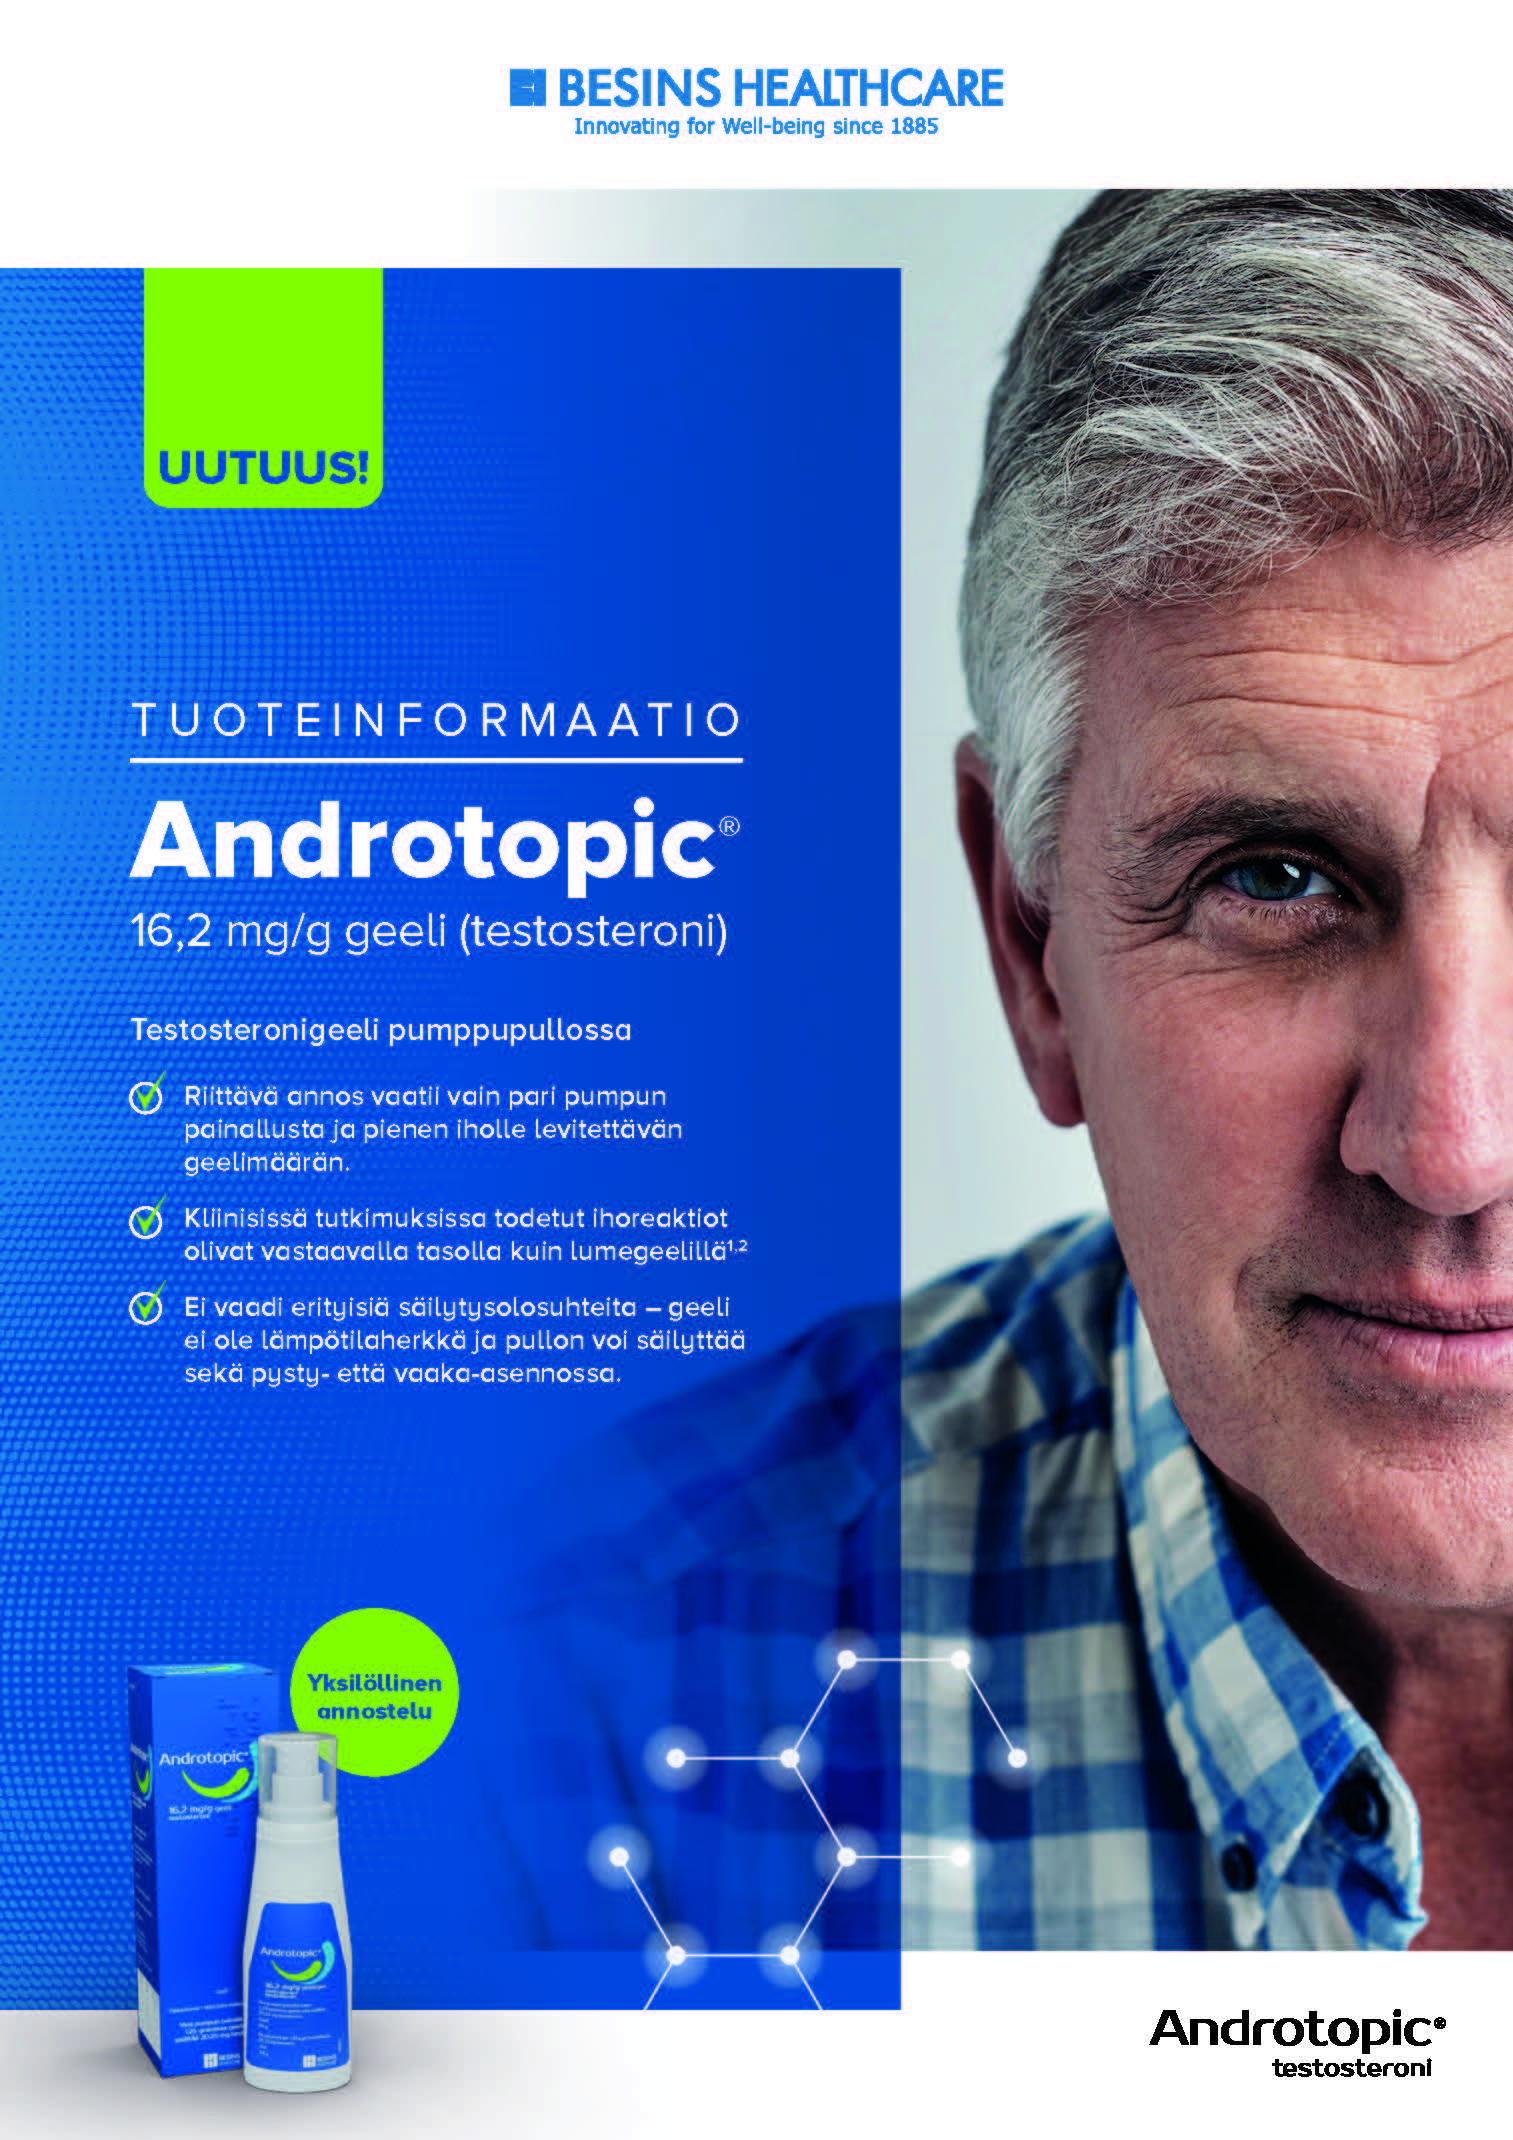 Tuoteinformaatio - Androtopic®